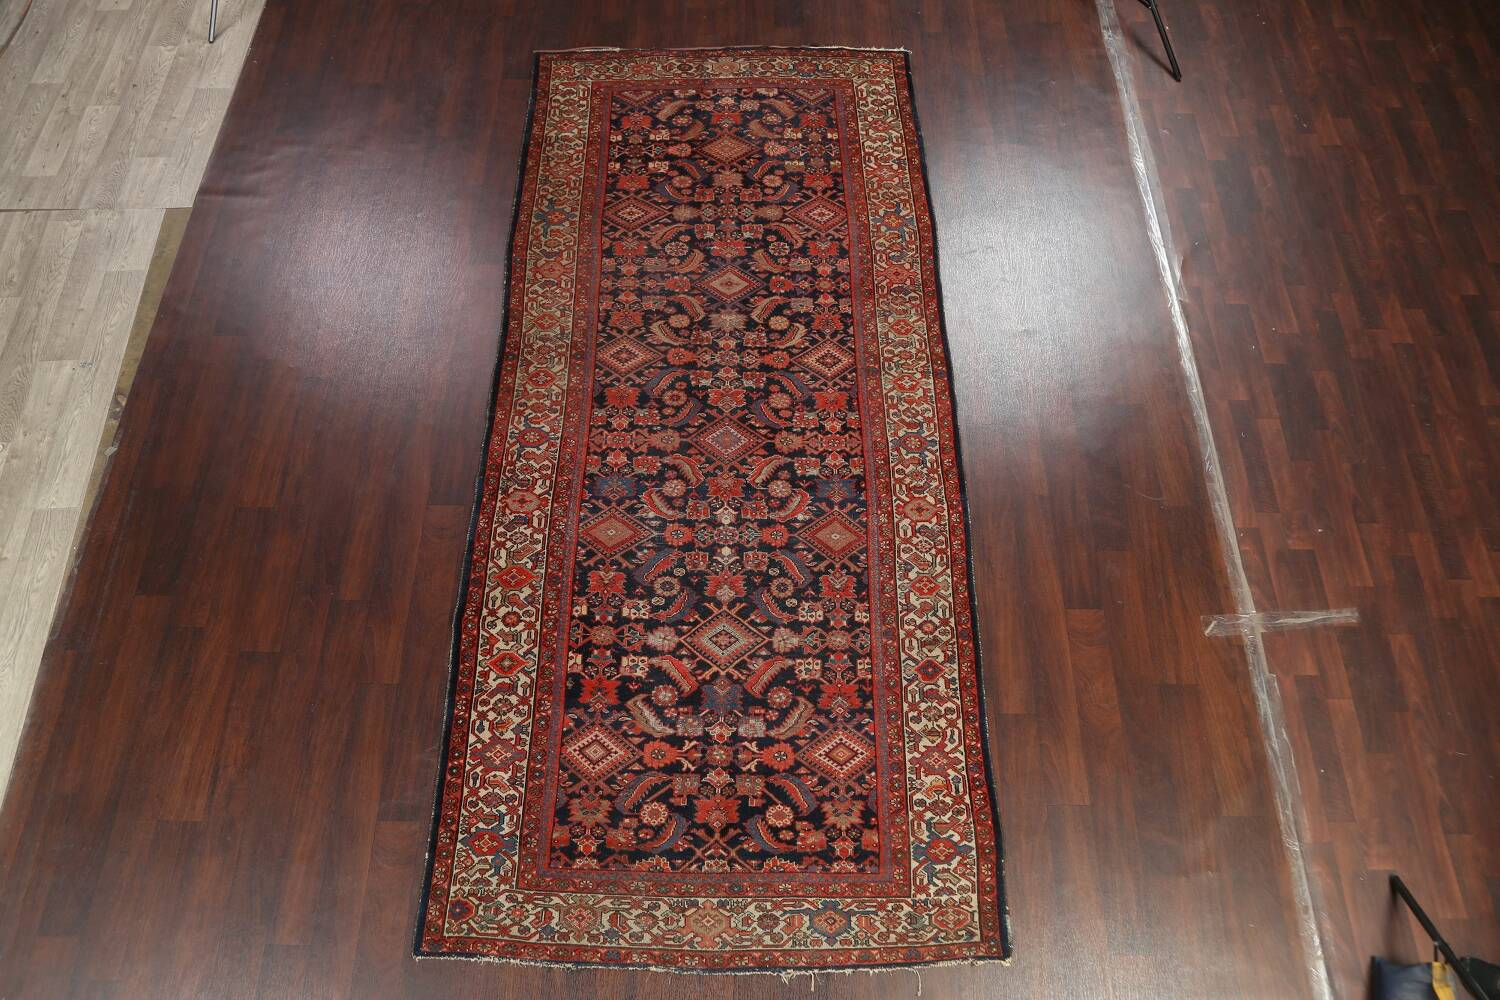 Pre-1900 Antique Vegetable Dye Malayer Persian Rug 5x12 image 12